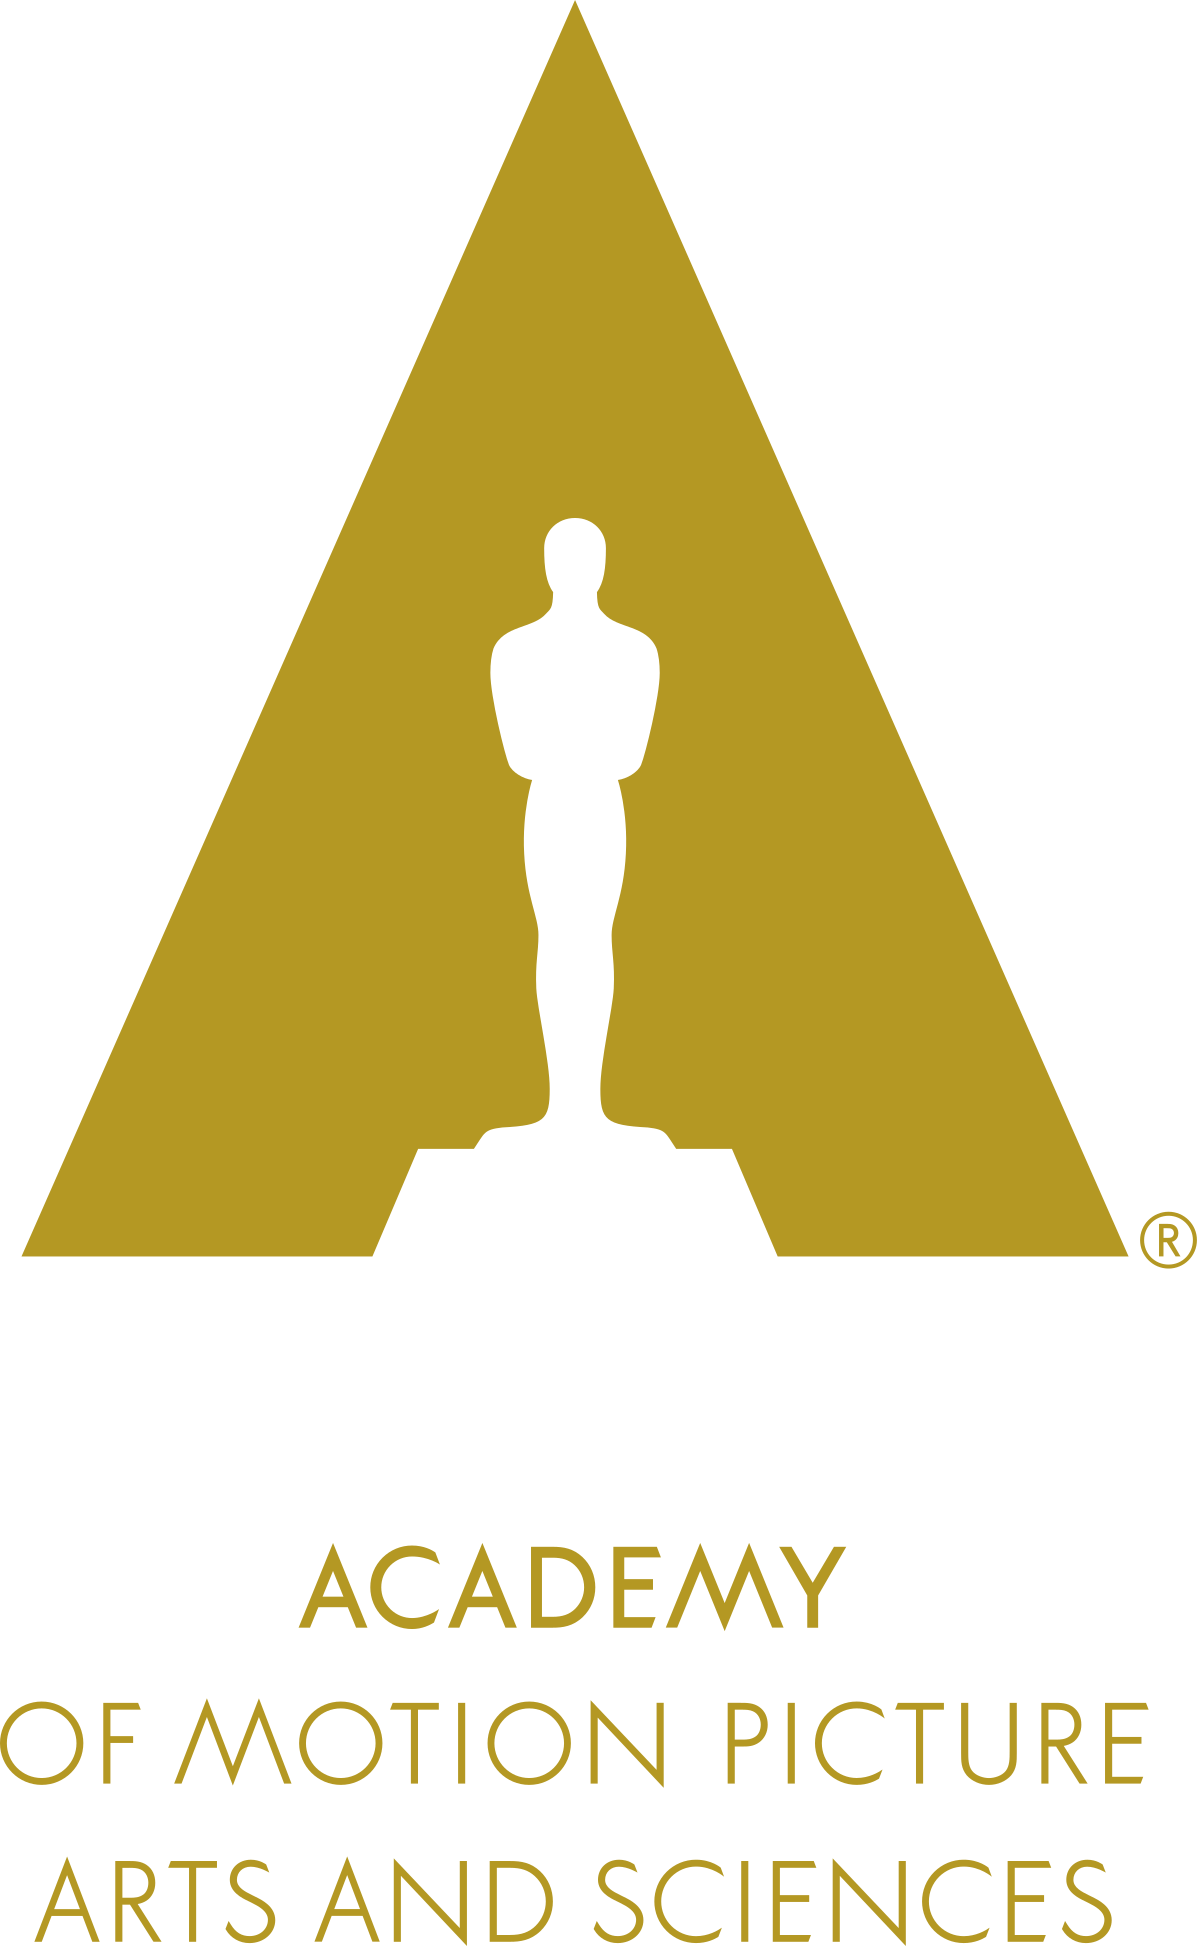 Academy_of_Motion_Picture_Arts_and_Sciences_logo.png